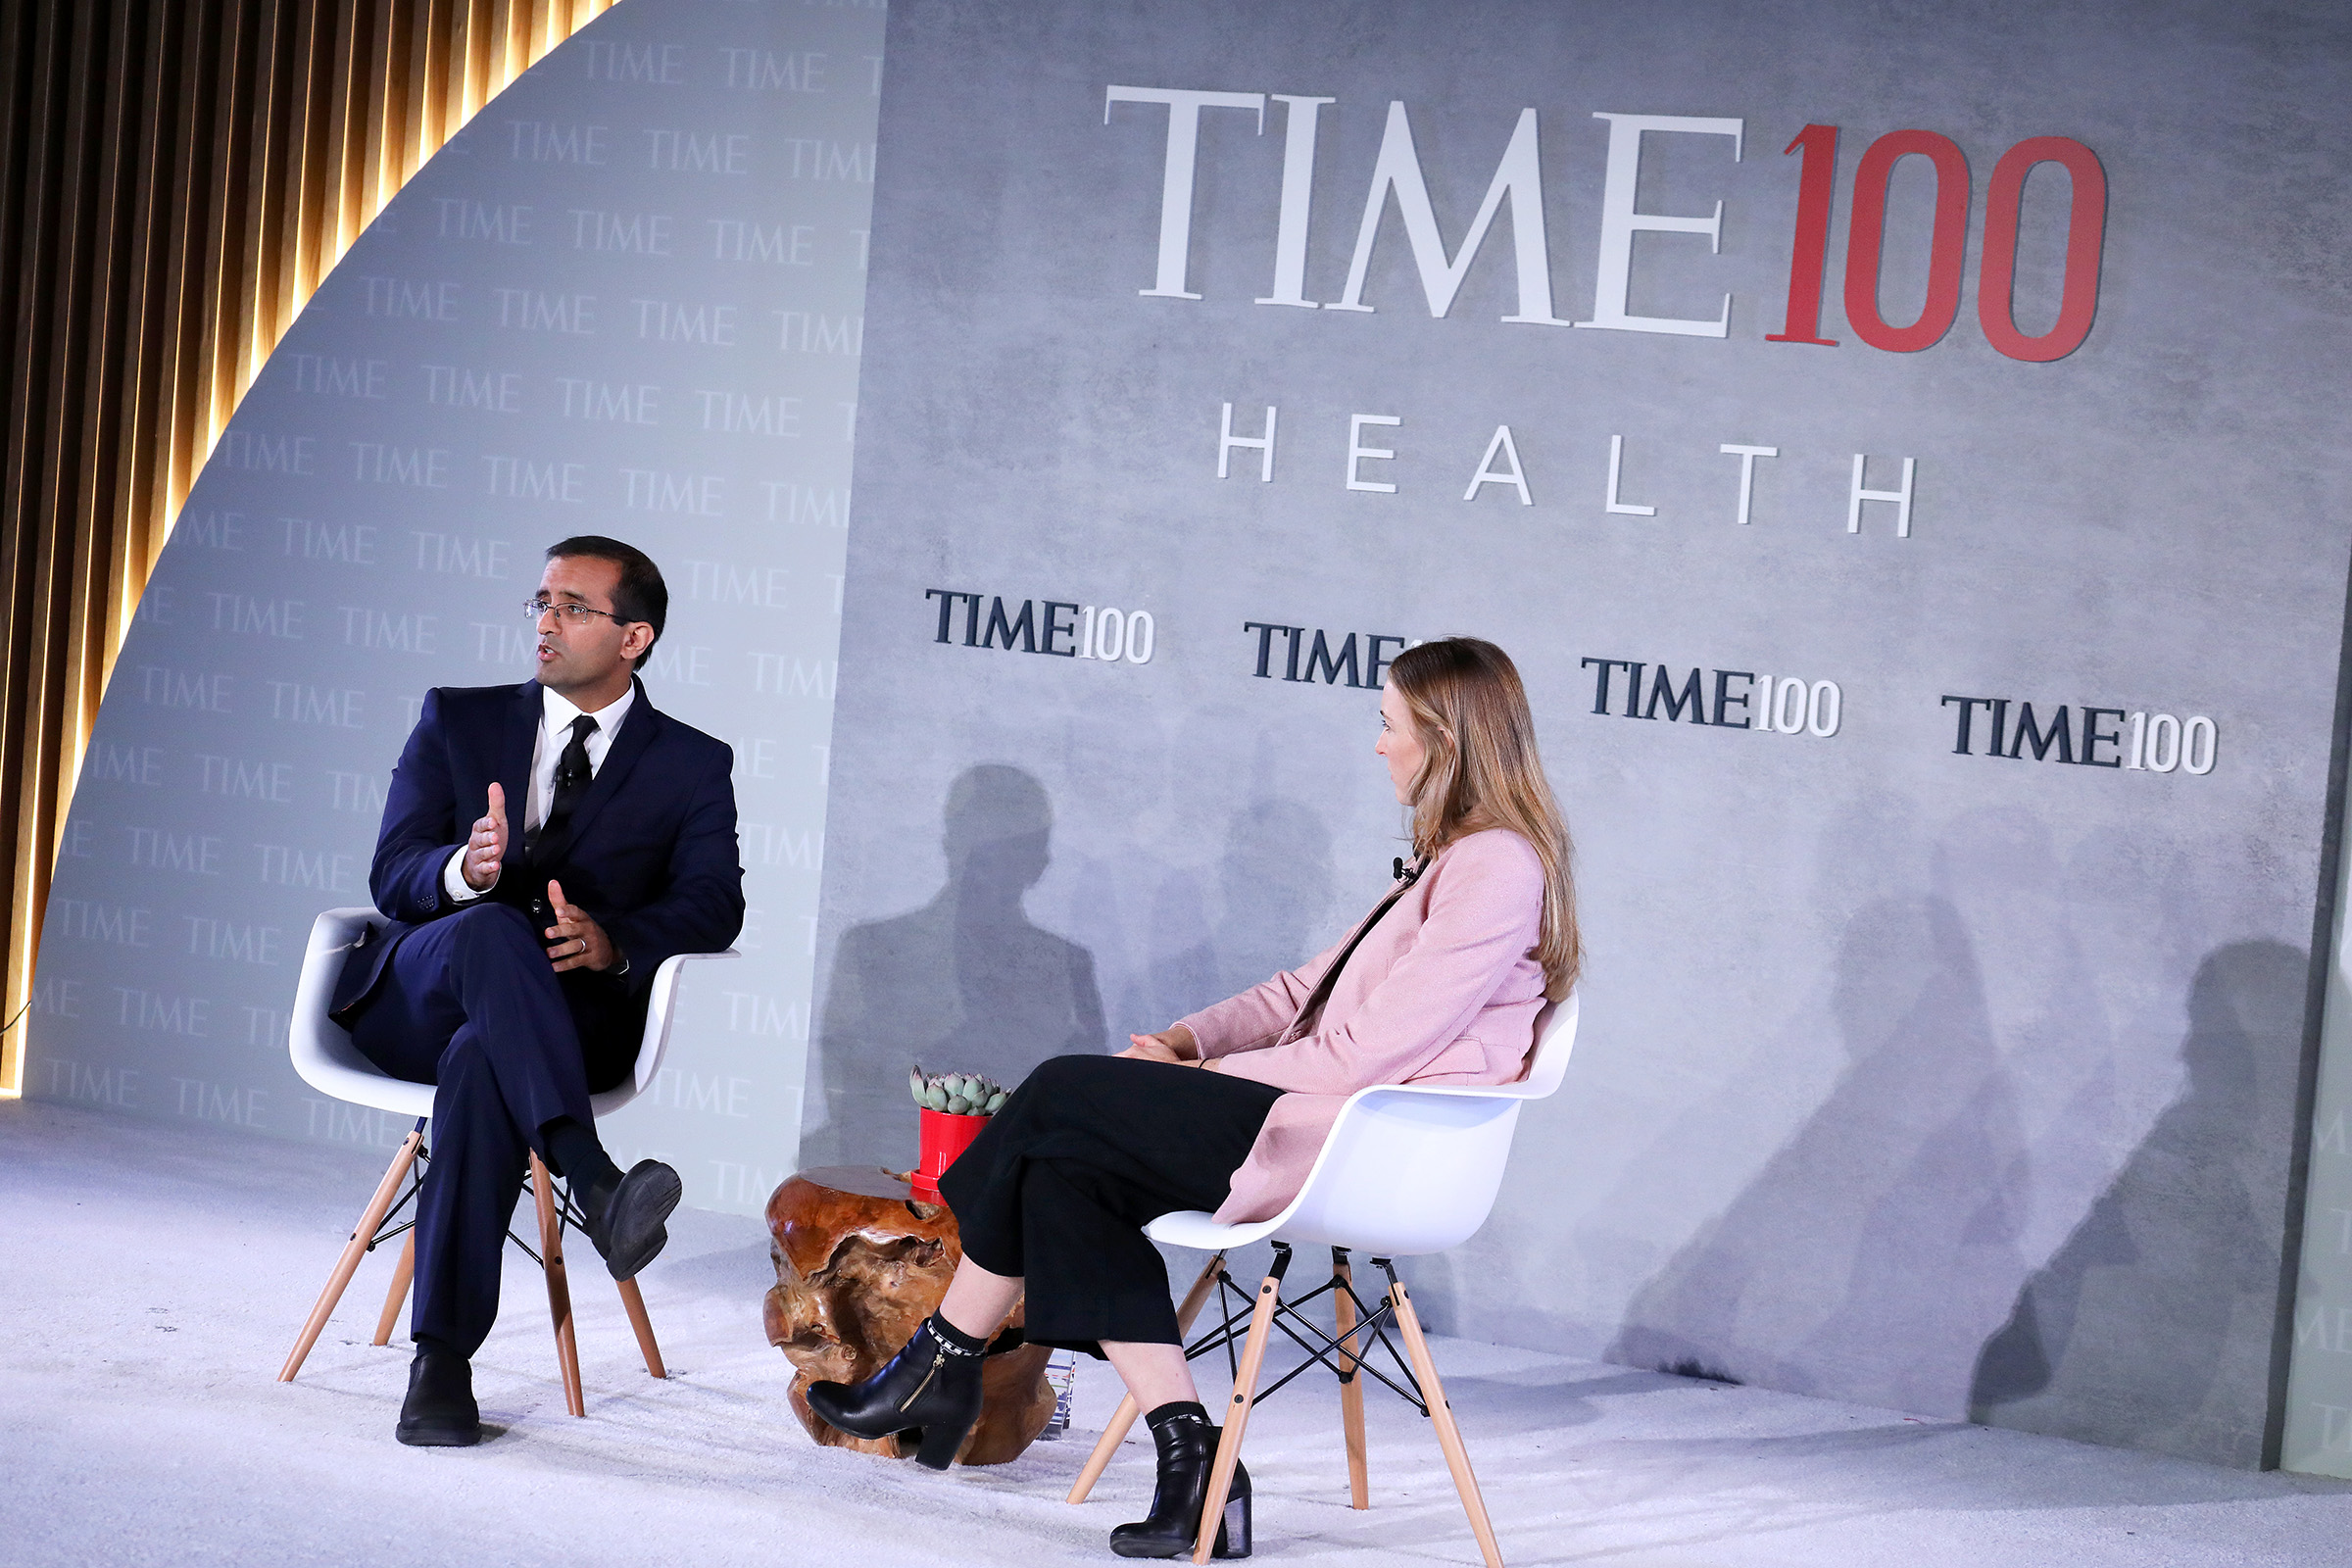 Co-Founder &CEO of Last Mile Health, Dr. Raj Panjabi (L), and Nation Editor at TIME Haley Sweetland Edwards speak onstage during the TIME 100 Health Summit at Pier 17 in New York City on Oct. 17, 2019.